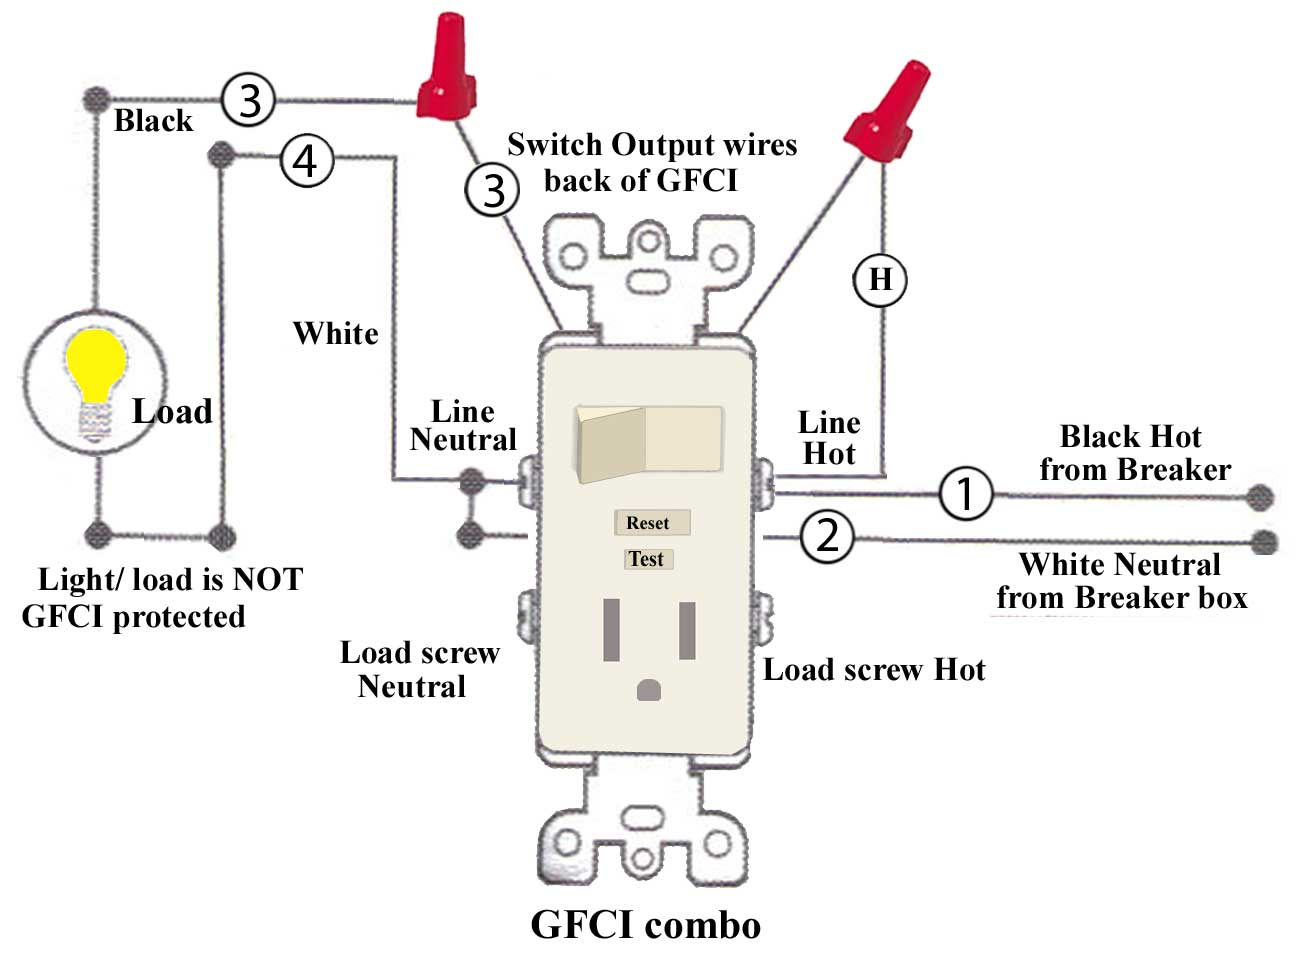 GFCI combo wiring 4 how to install and troubleshoot gfci spa gfci wiring diagram at reclaimingppi.co